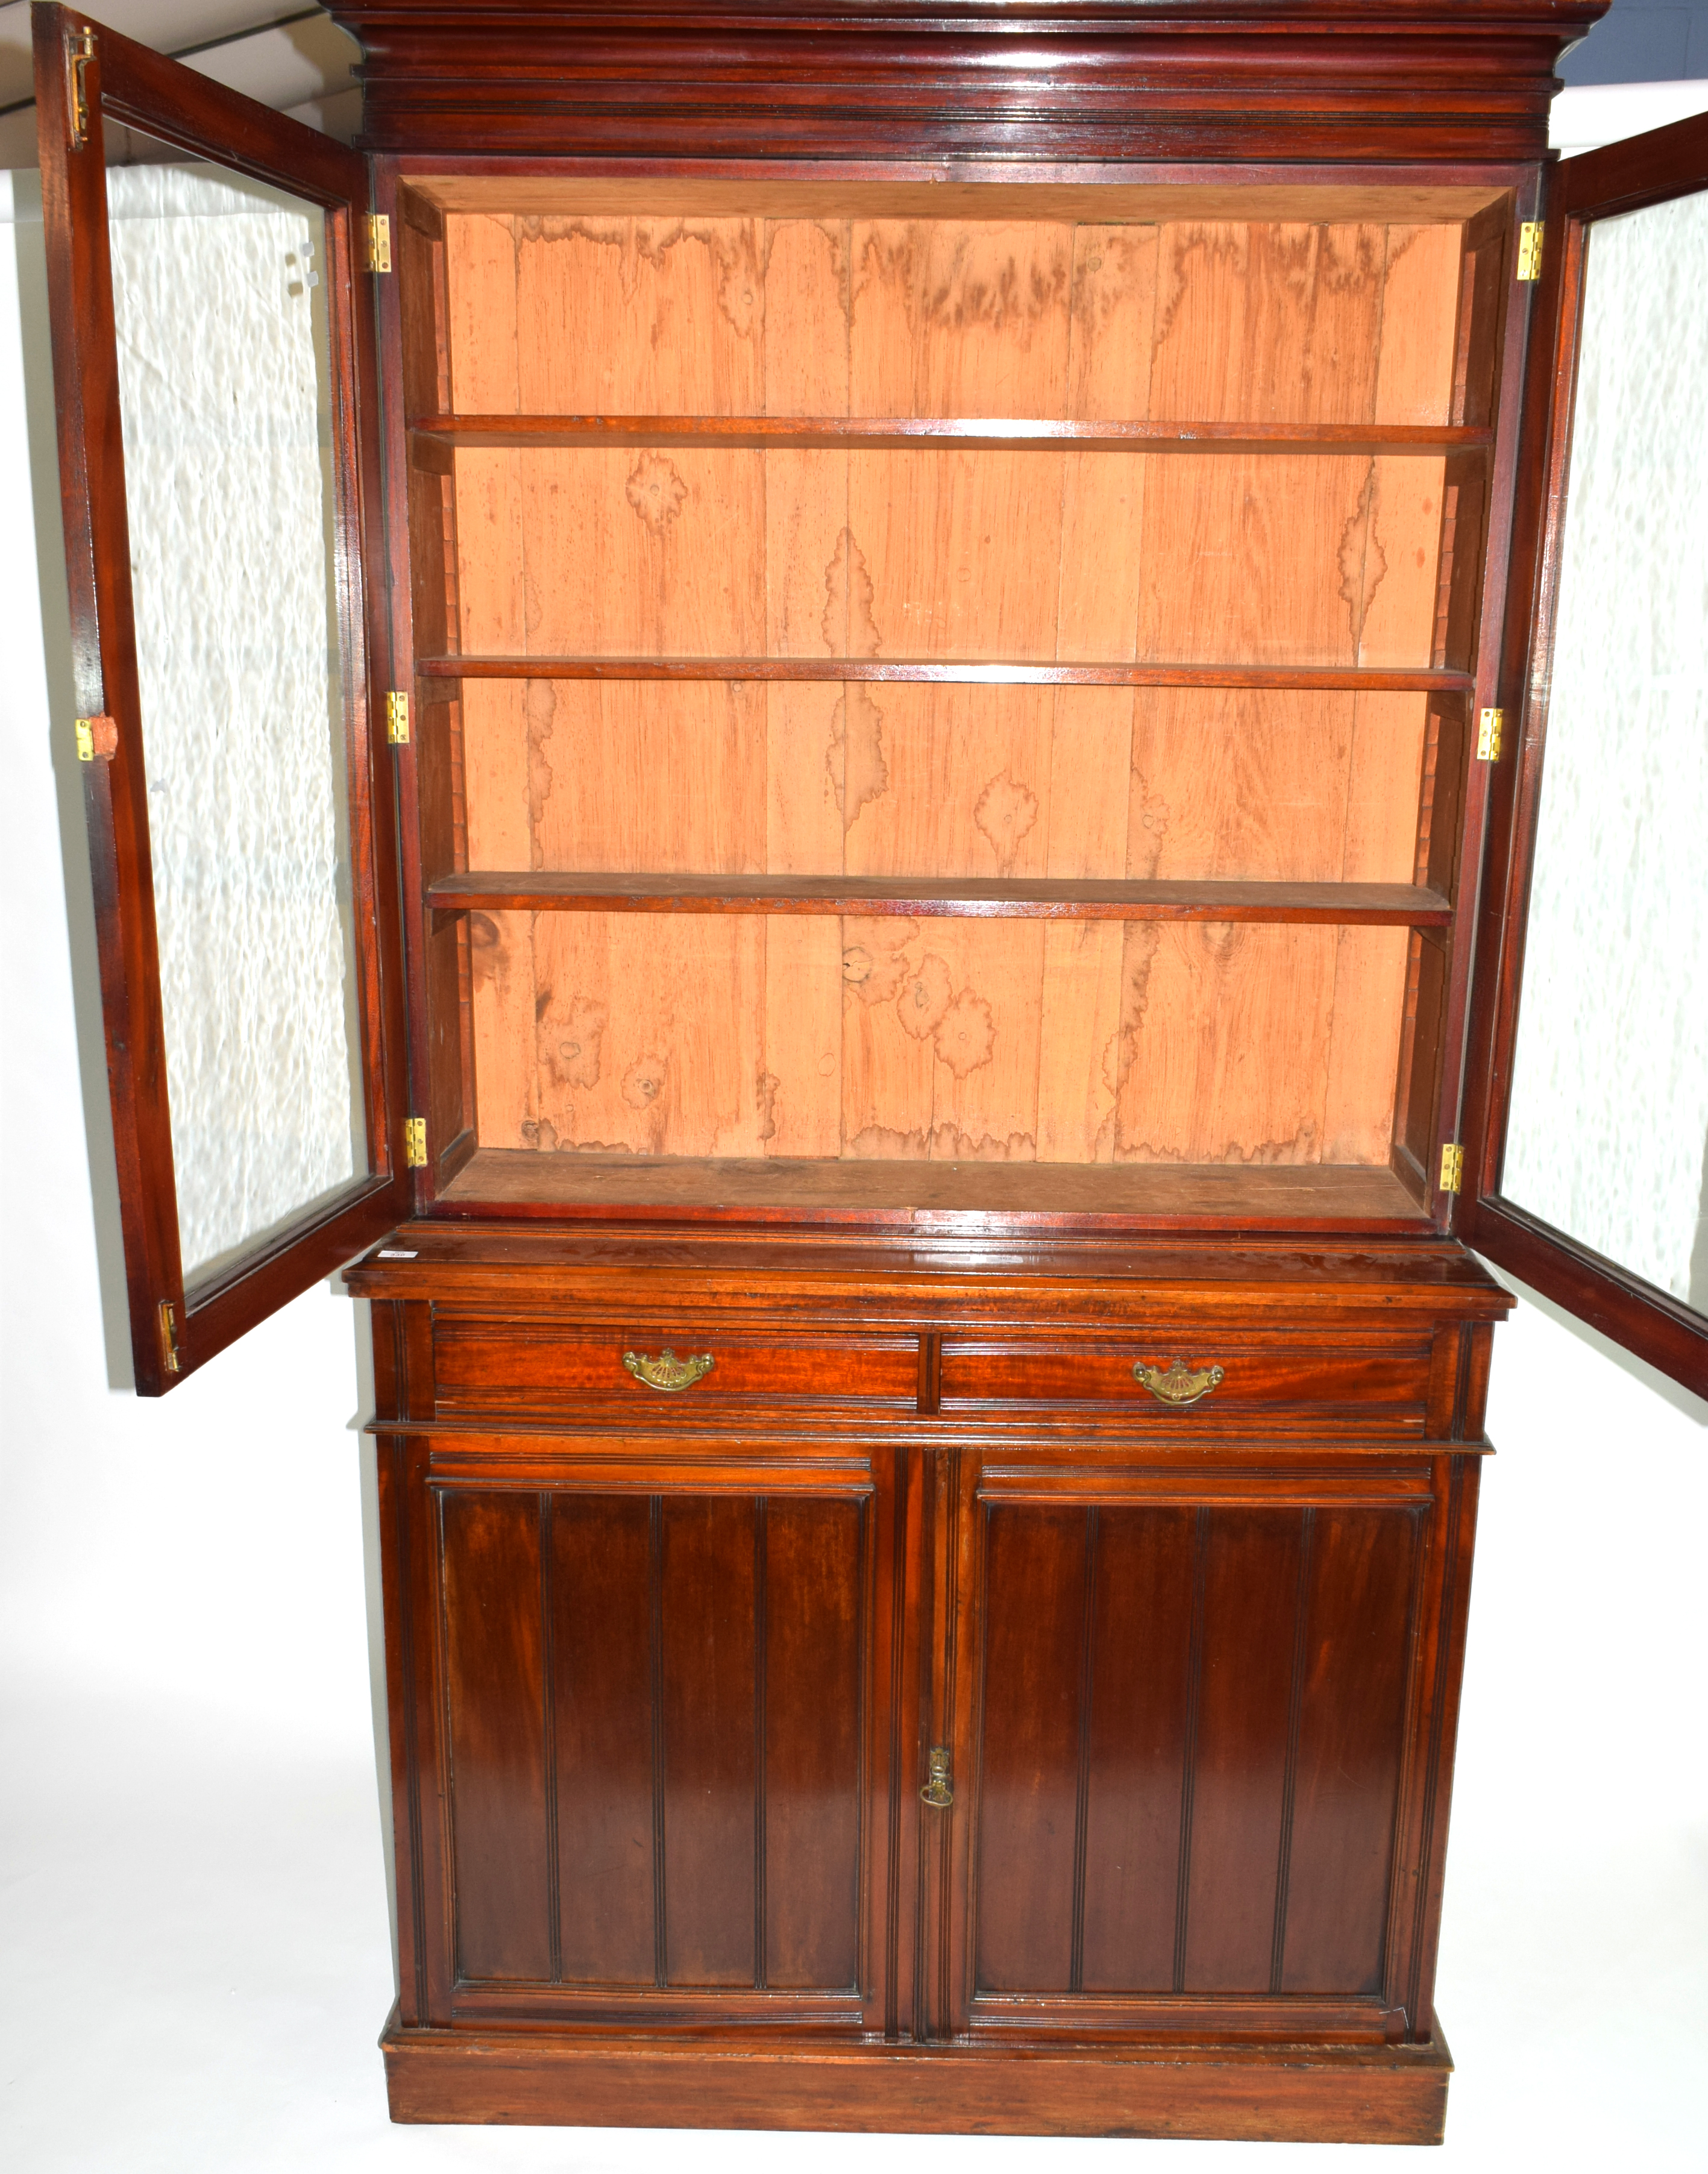 Full height mahogany side cabinet with glazed bookcase raised over double cupboard, width approx - Image 2 of 6